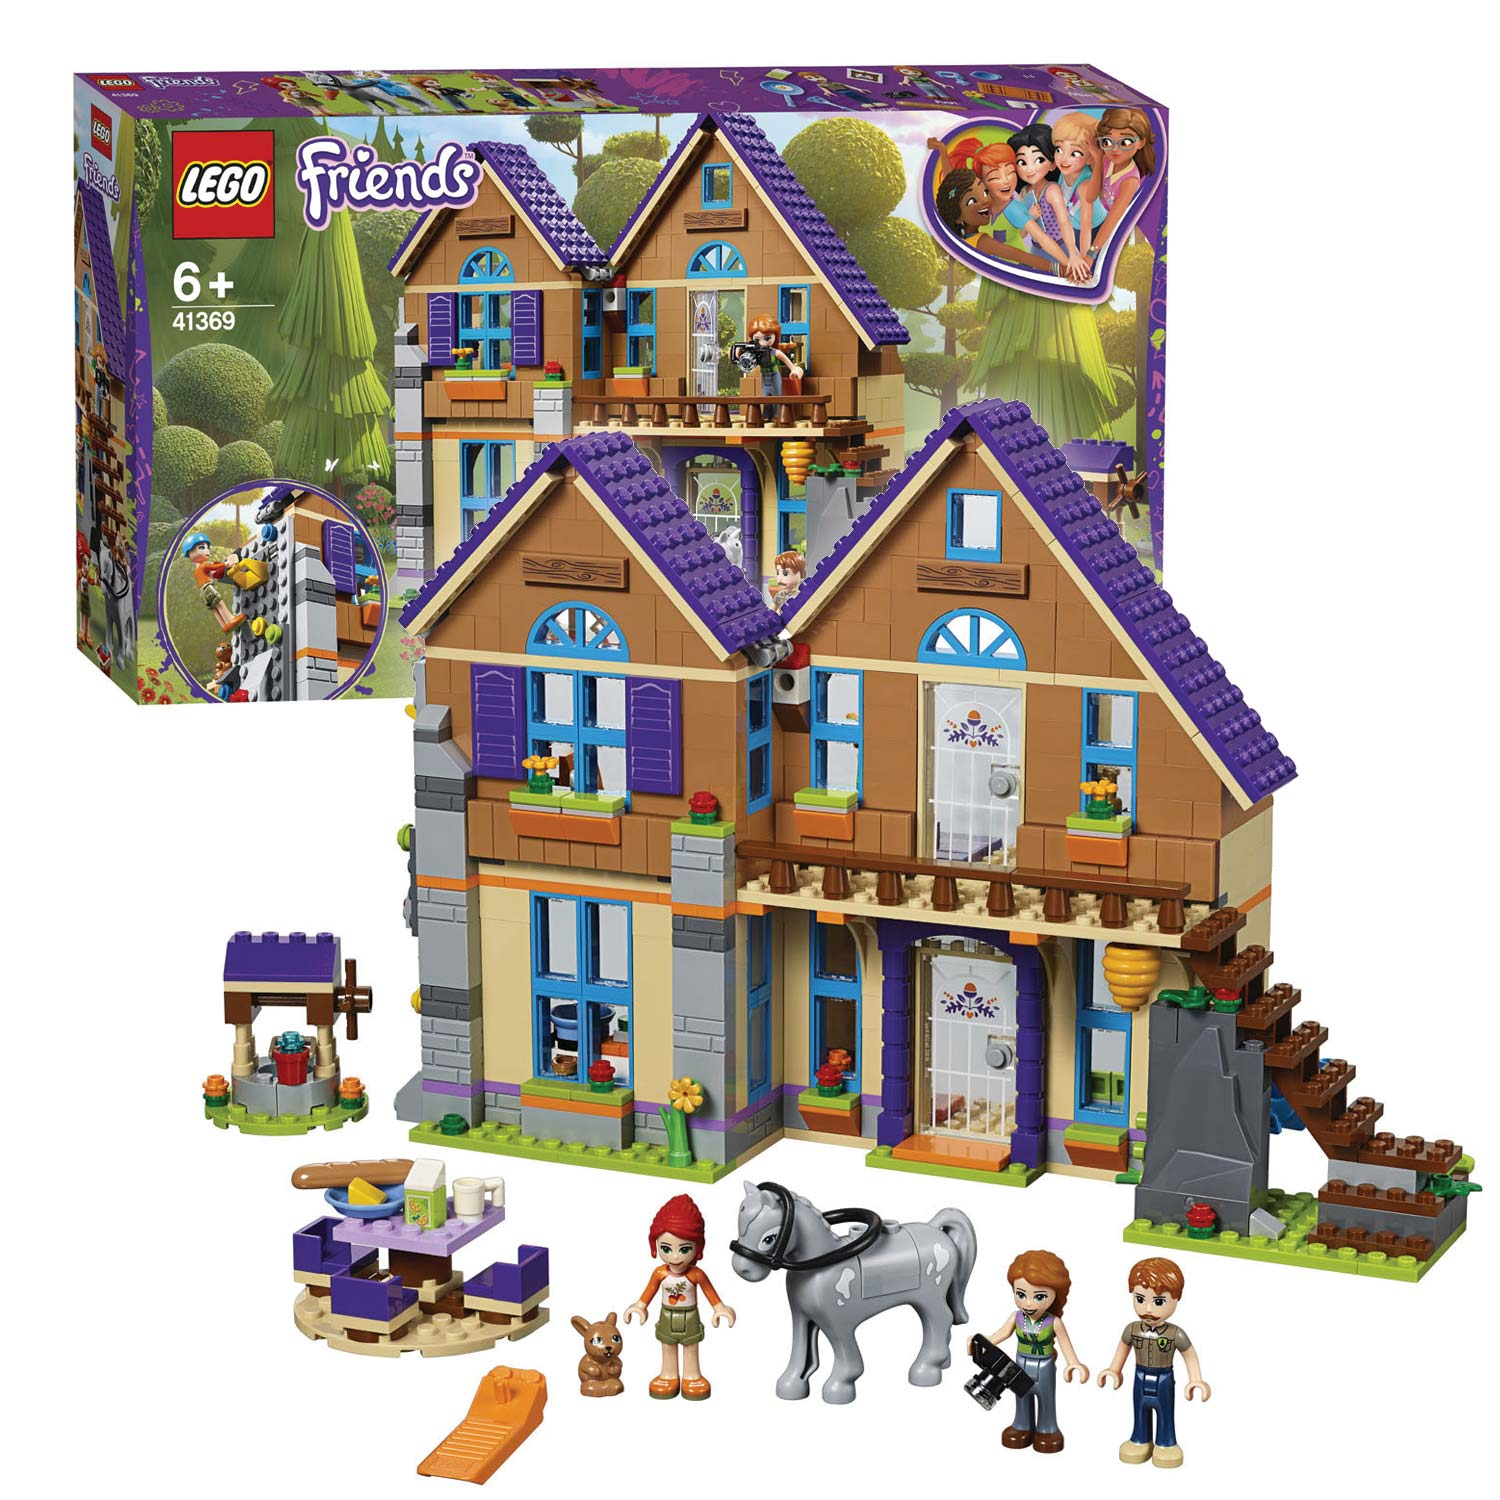 LEGO Friends 41369 Mia's Huis